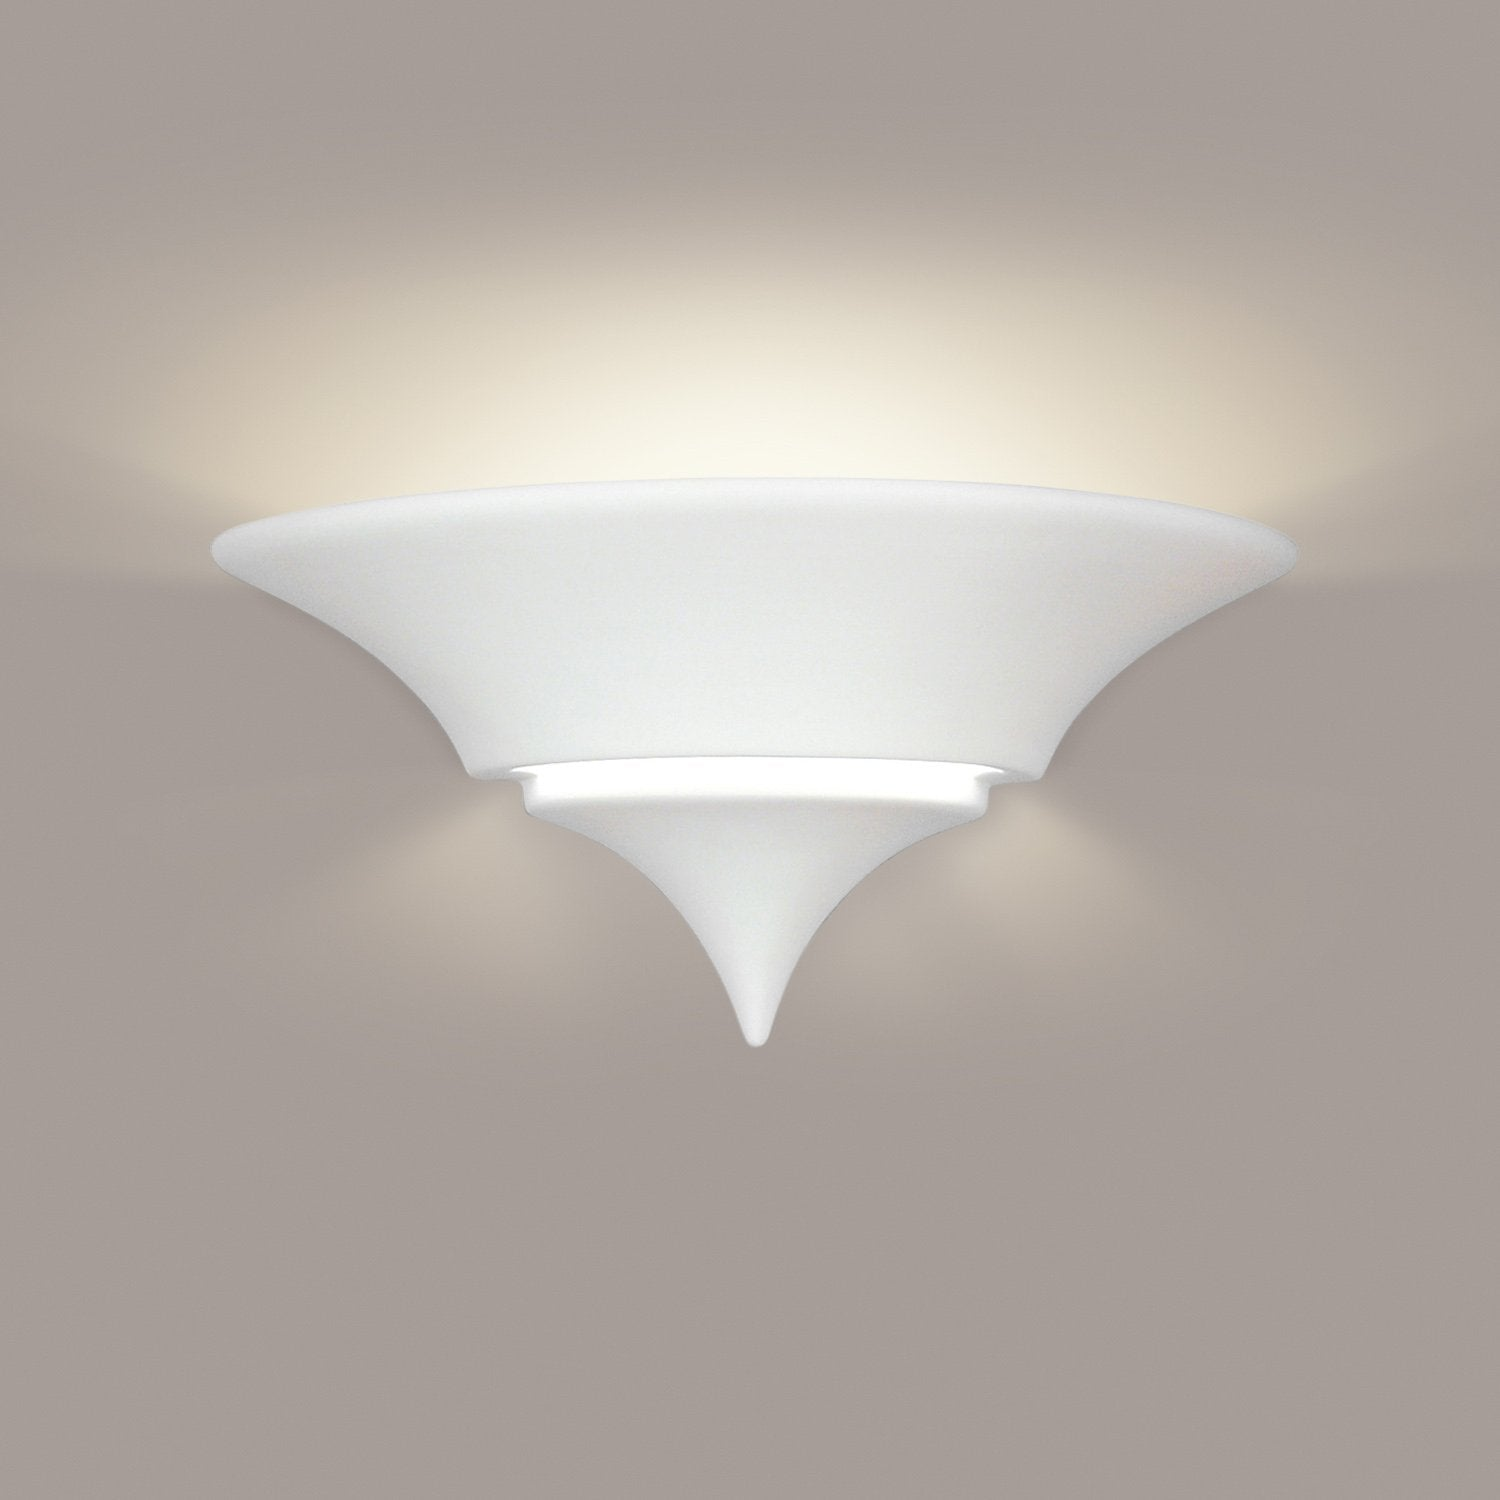 A19 401-CFL13-MW Islands of Light Collection Atlantis Matte White Finish Wall Sconce